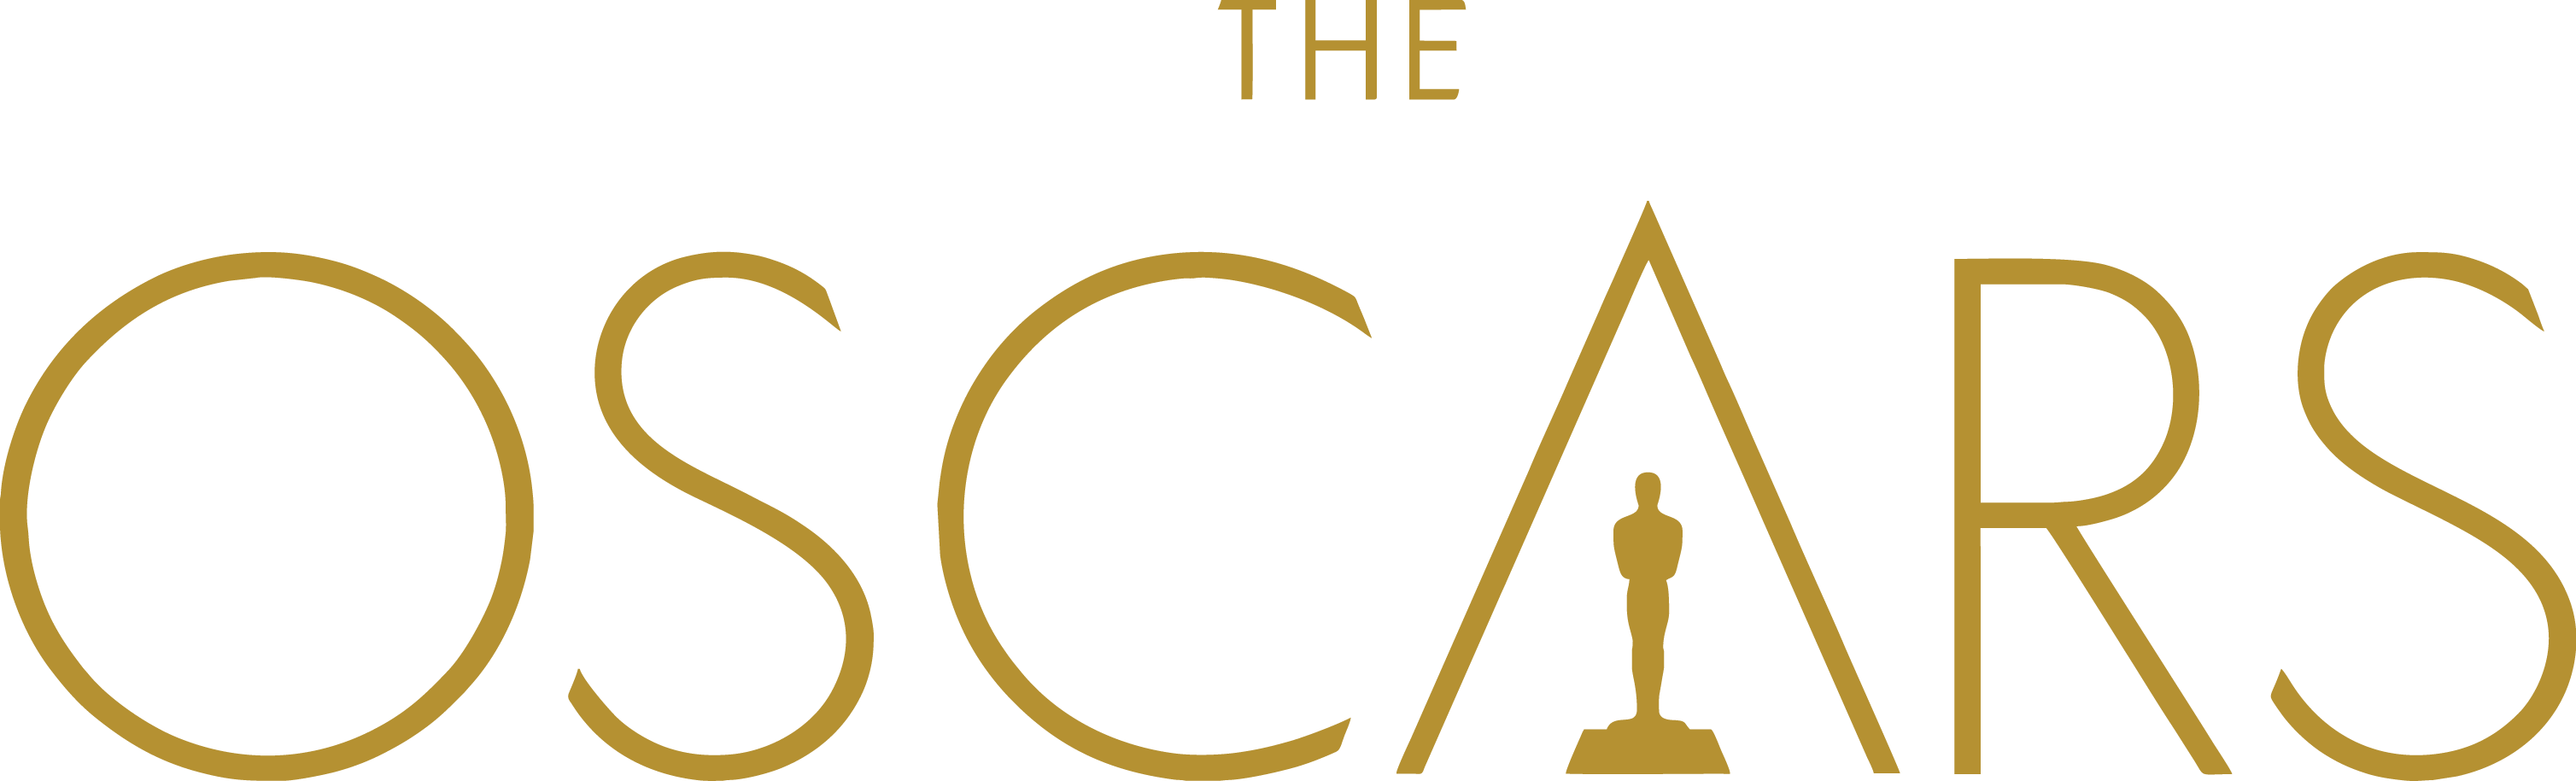 3016x914 Collection Of Oscar Award Clipart Free High Quality, Free